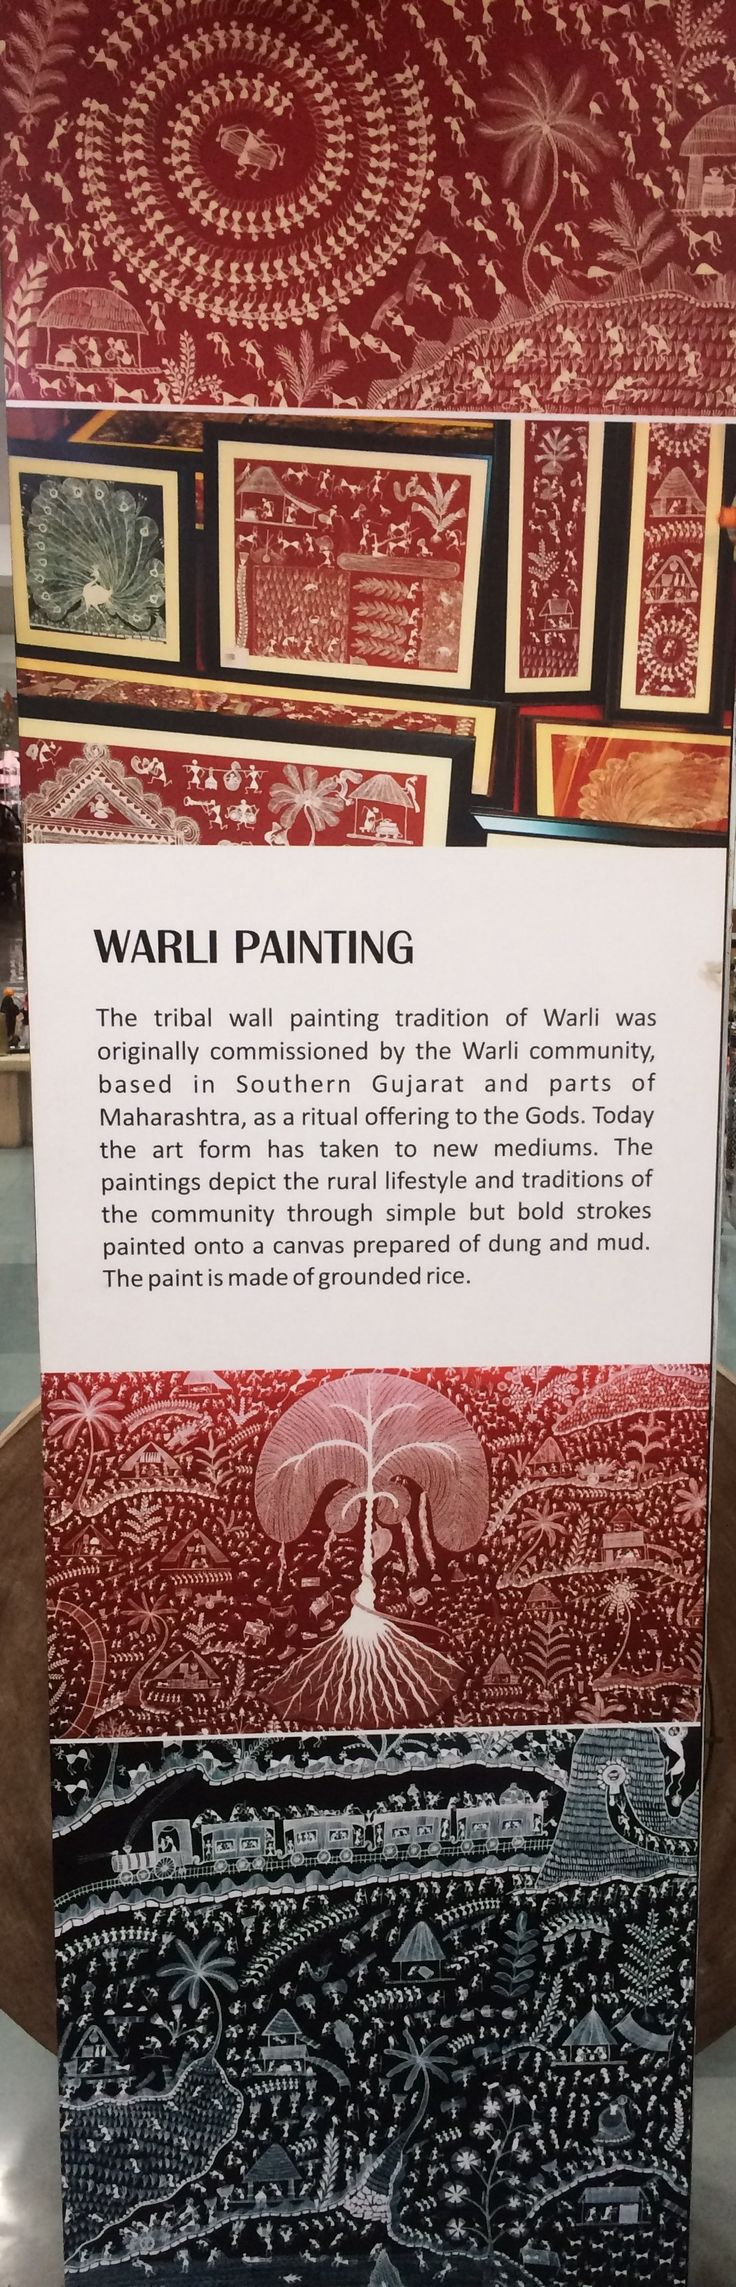 The Warli people are famous for their beautiful and unique style of painting. Warli painting, India's global art proudly tribal art. We are sharing authentic and real information about warli art. smile emoticon Call us on +91 79 2687 2664/65/66 Follow us on the bellow links : https://twitter.com/Craftrootsinfo https://instagram.com/craftroots/